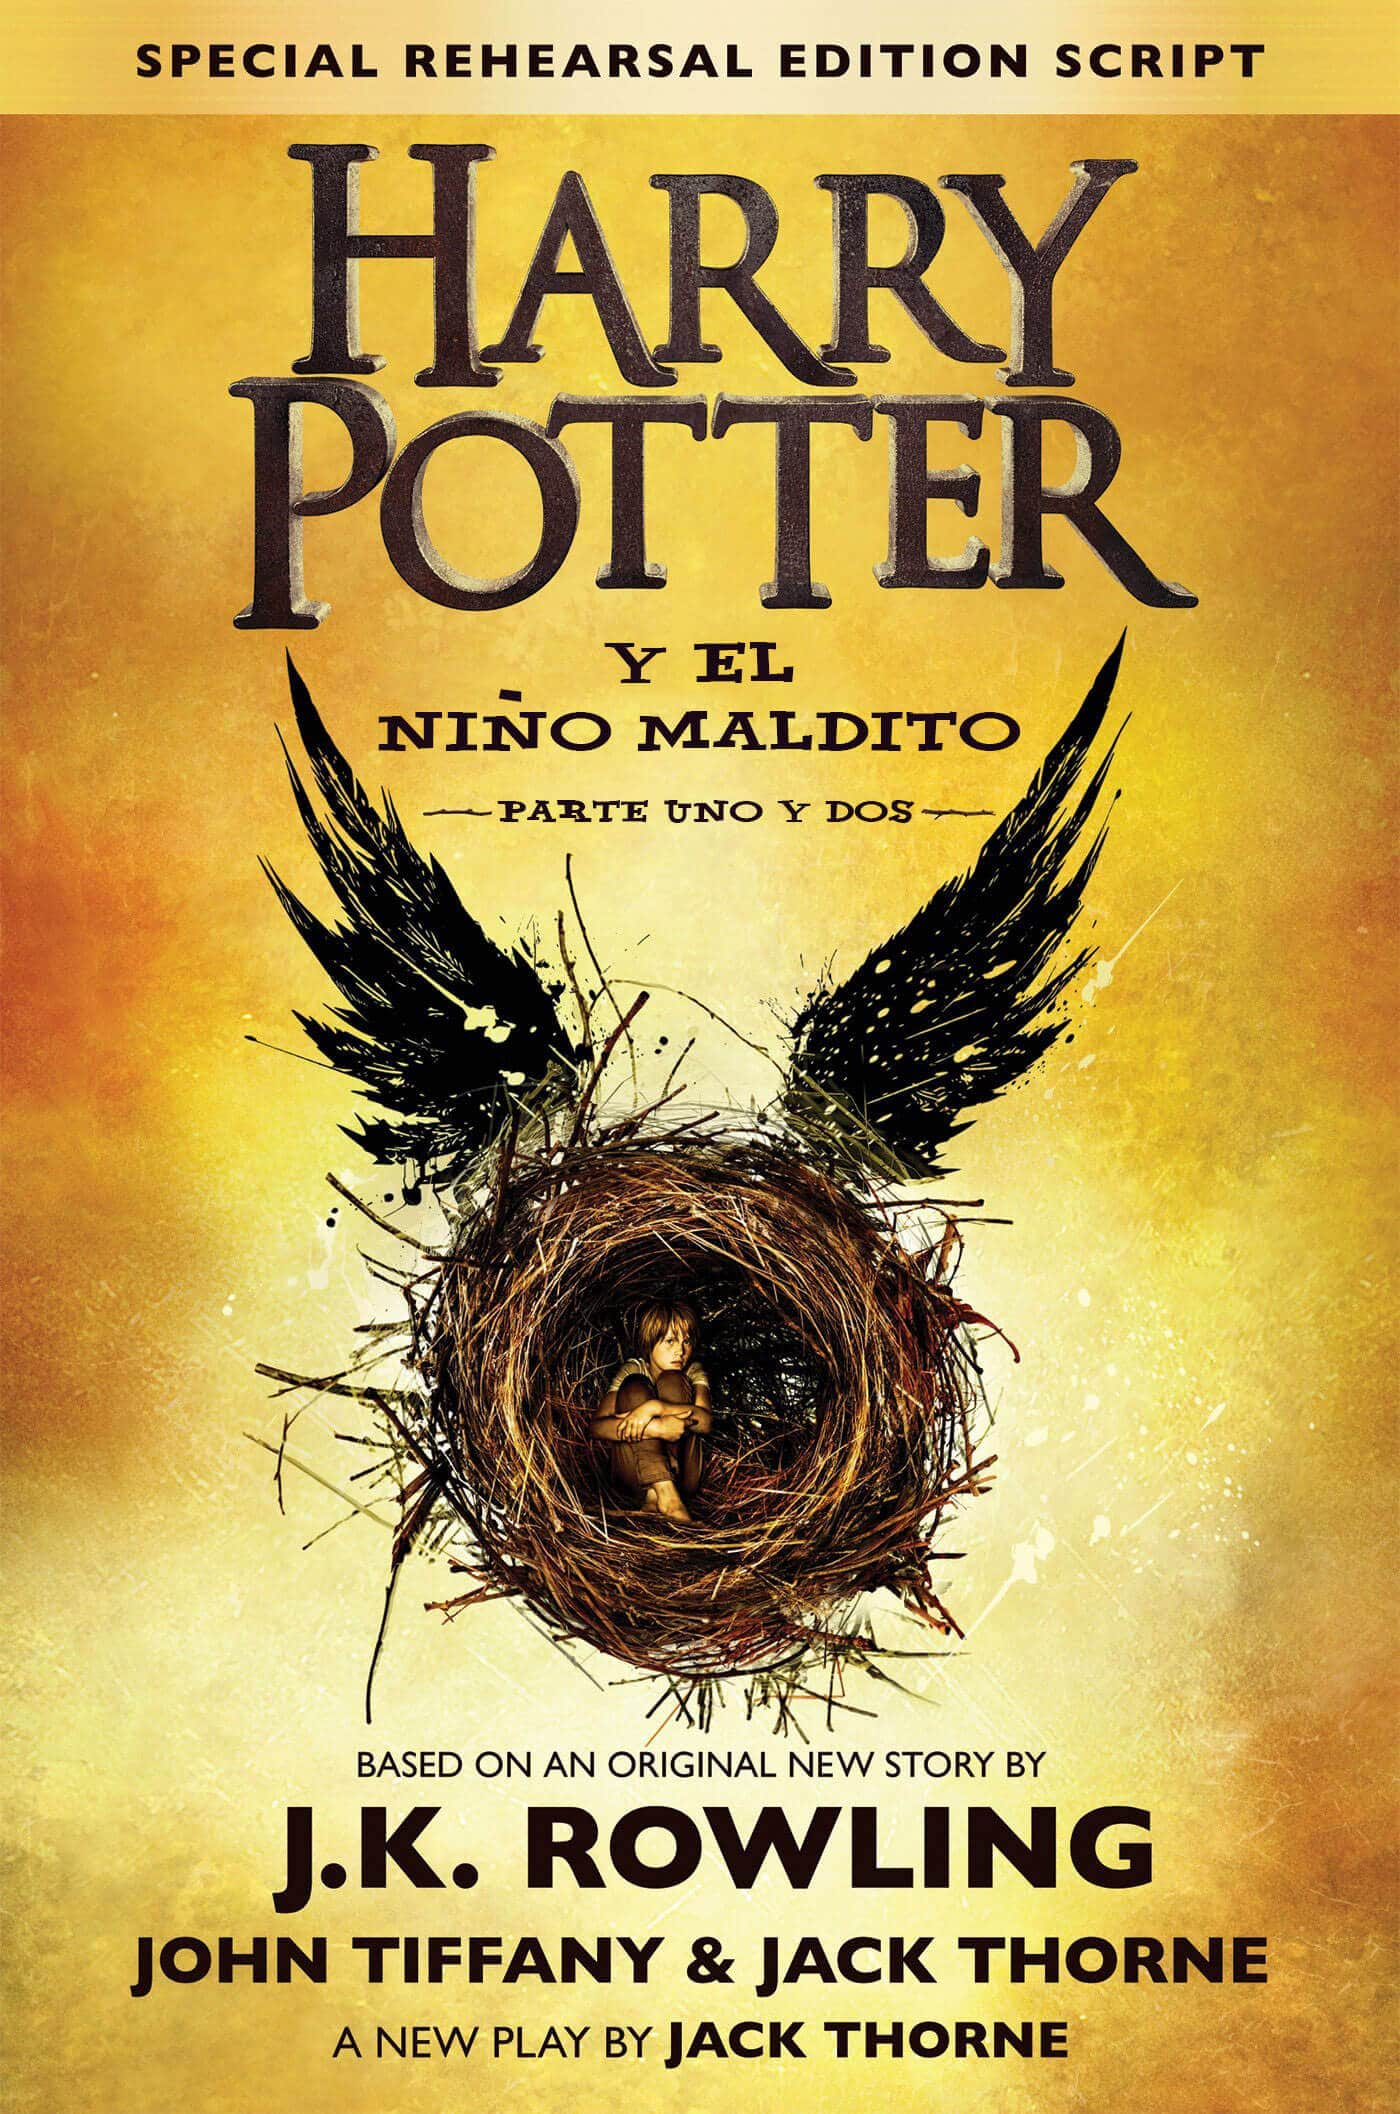 Harry Potter Libros Pdf Descargar El Libro Harry Potter Y El Niño Maldito Pdf Epub